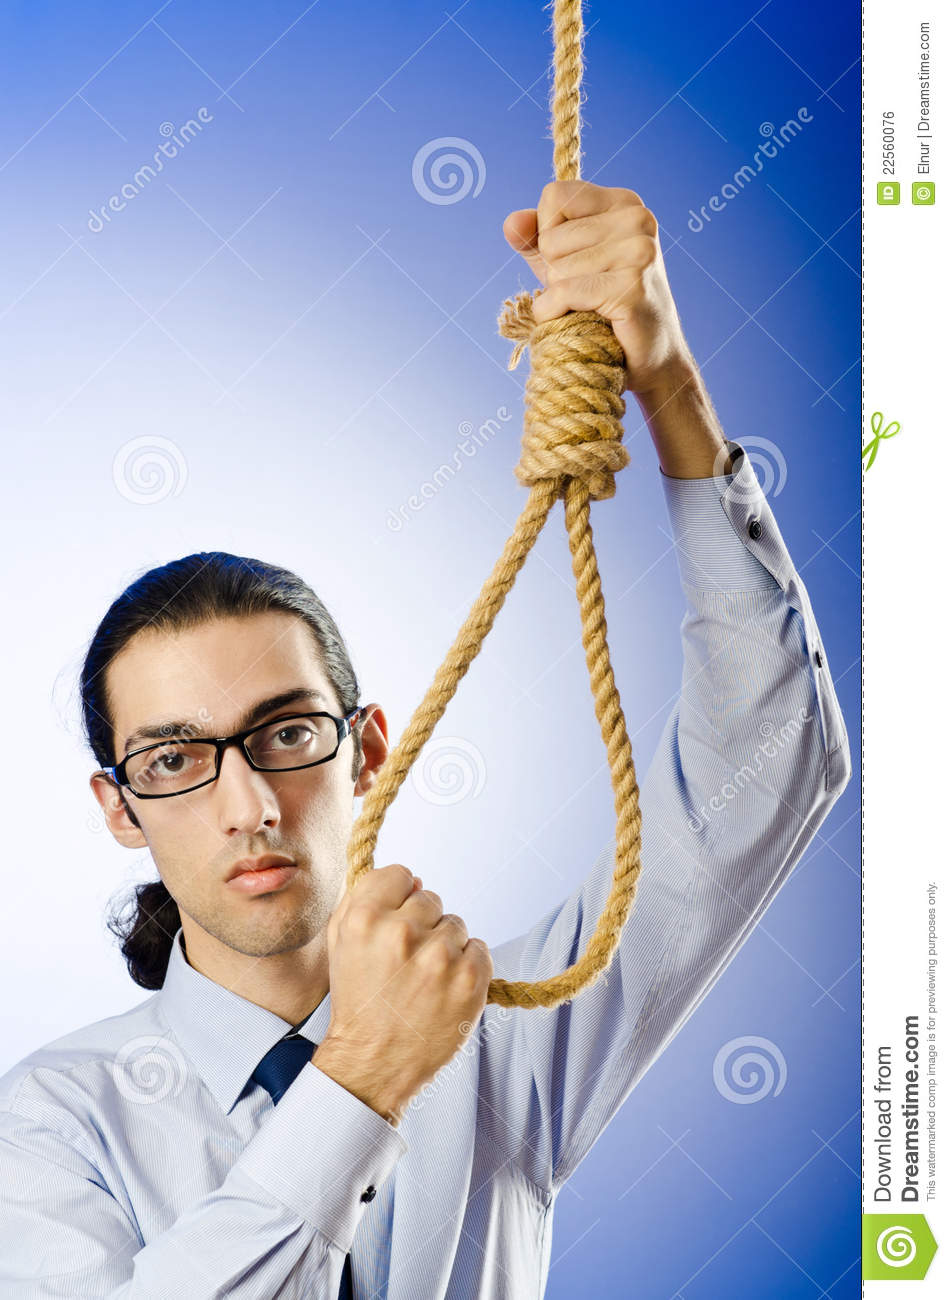 Stock Photo Aletia 164802918: Thoughts Of Suicide Stock Photo